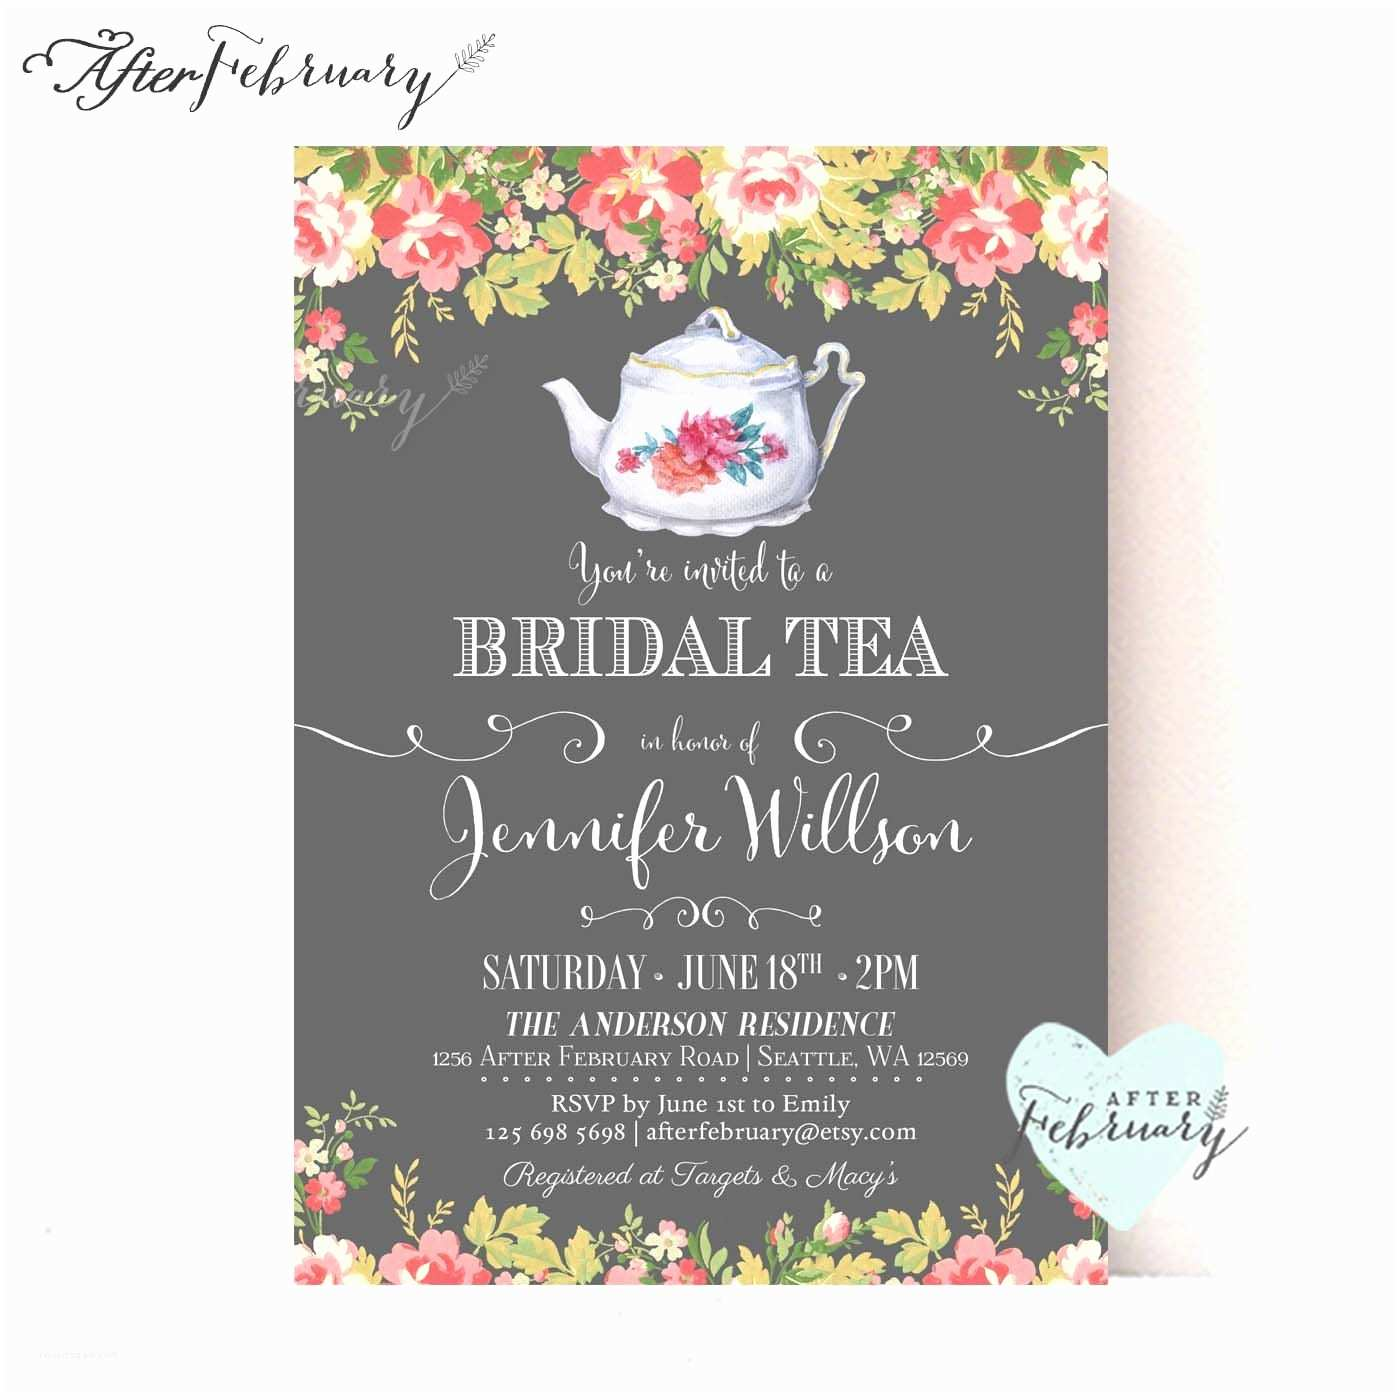 Tea Party Wedding Invitations Bridal Shower Invitations Bridal Shower Tea Party